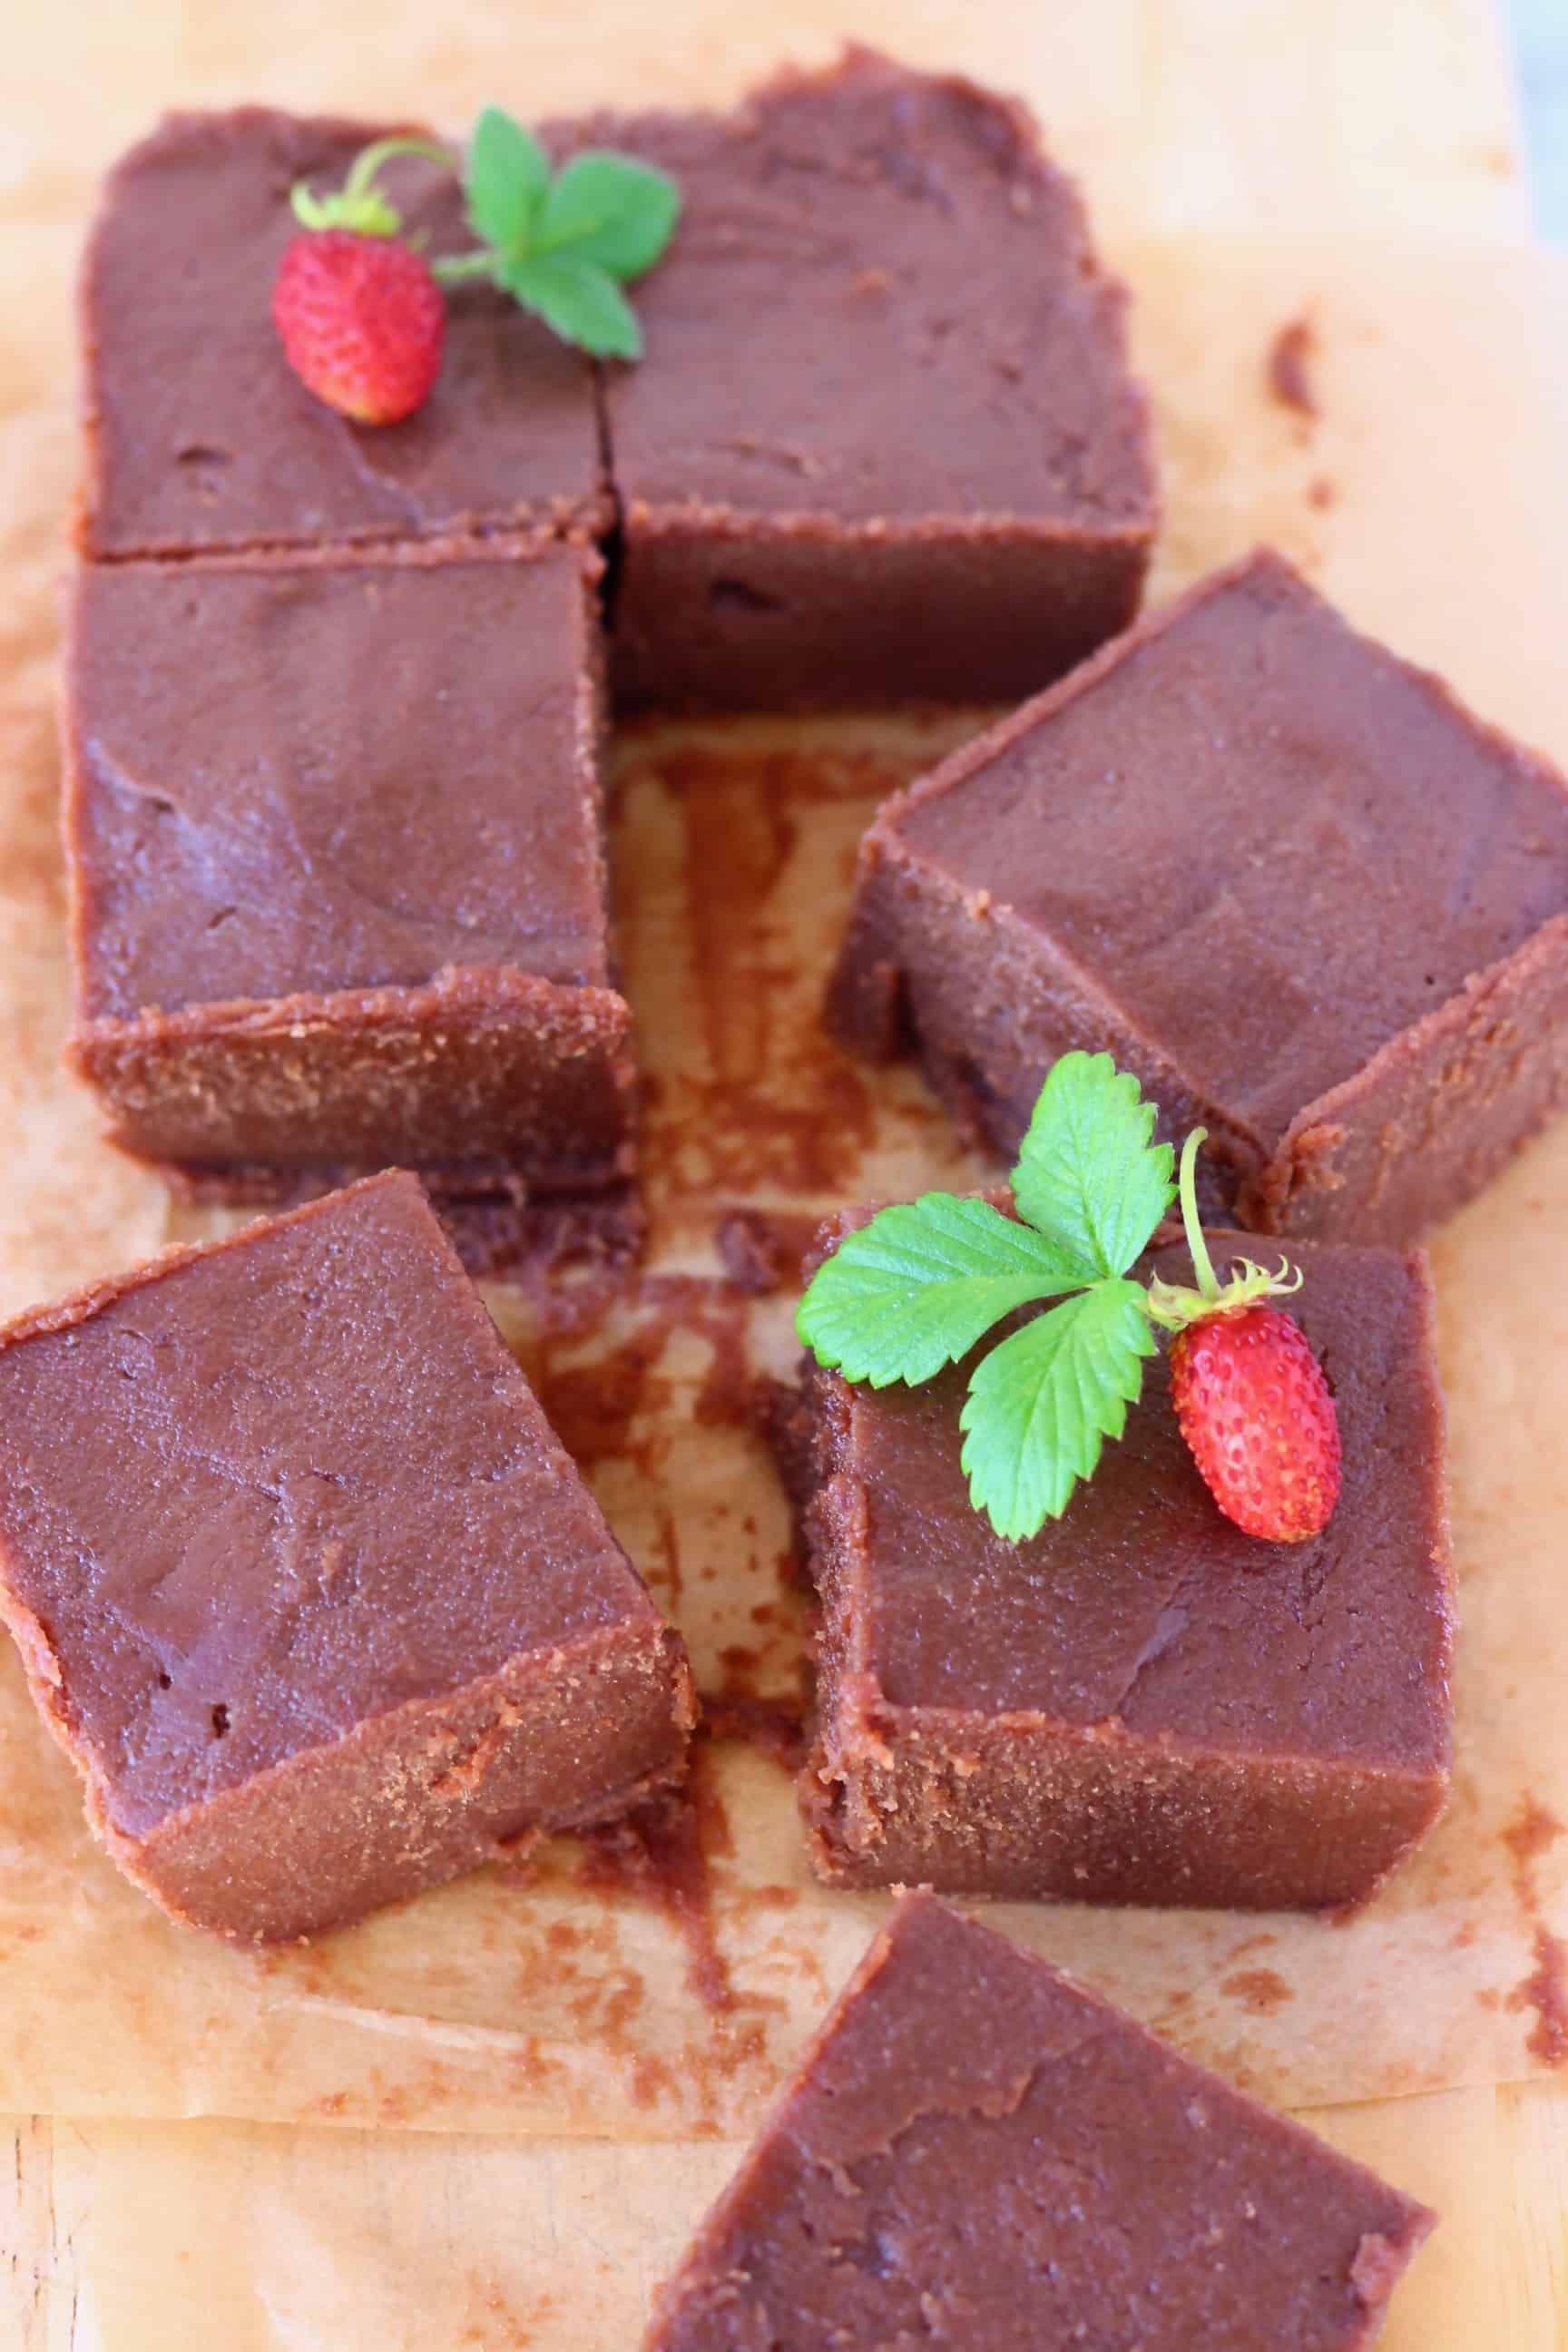 Seven squares of chocolate fudge on a sheet of brown baking paper decorated with mini strawberries with green leaves